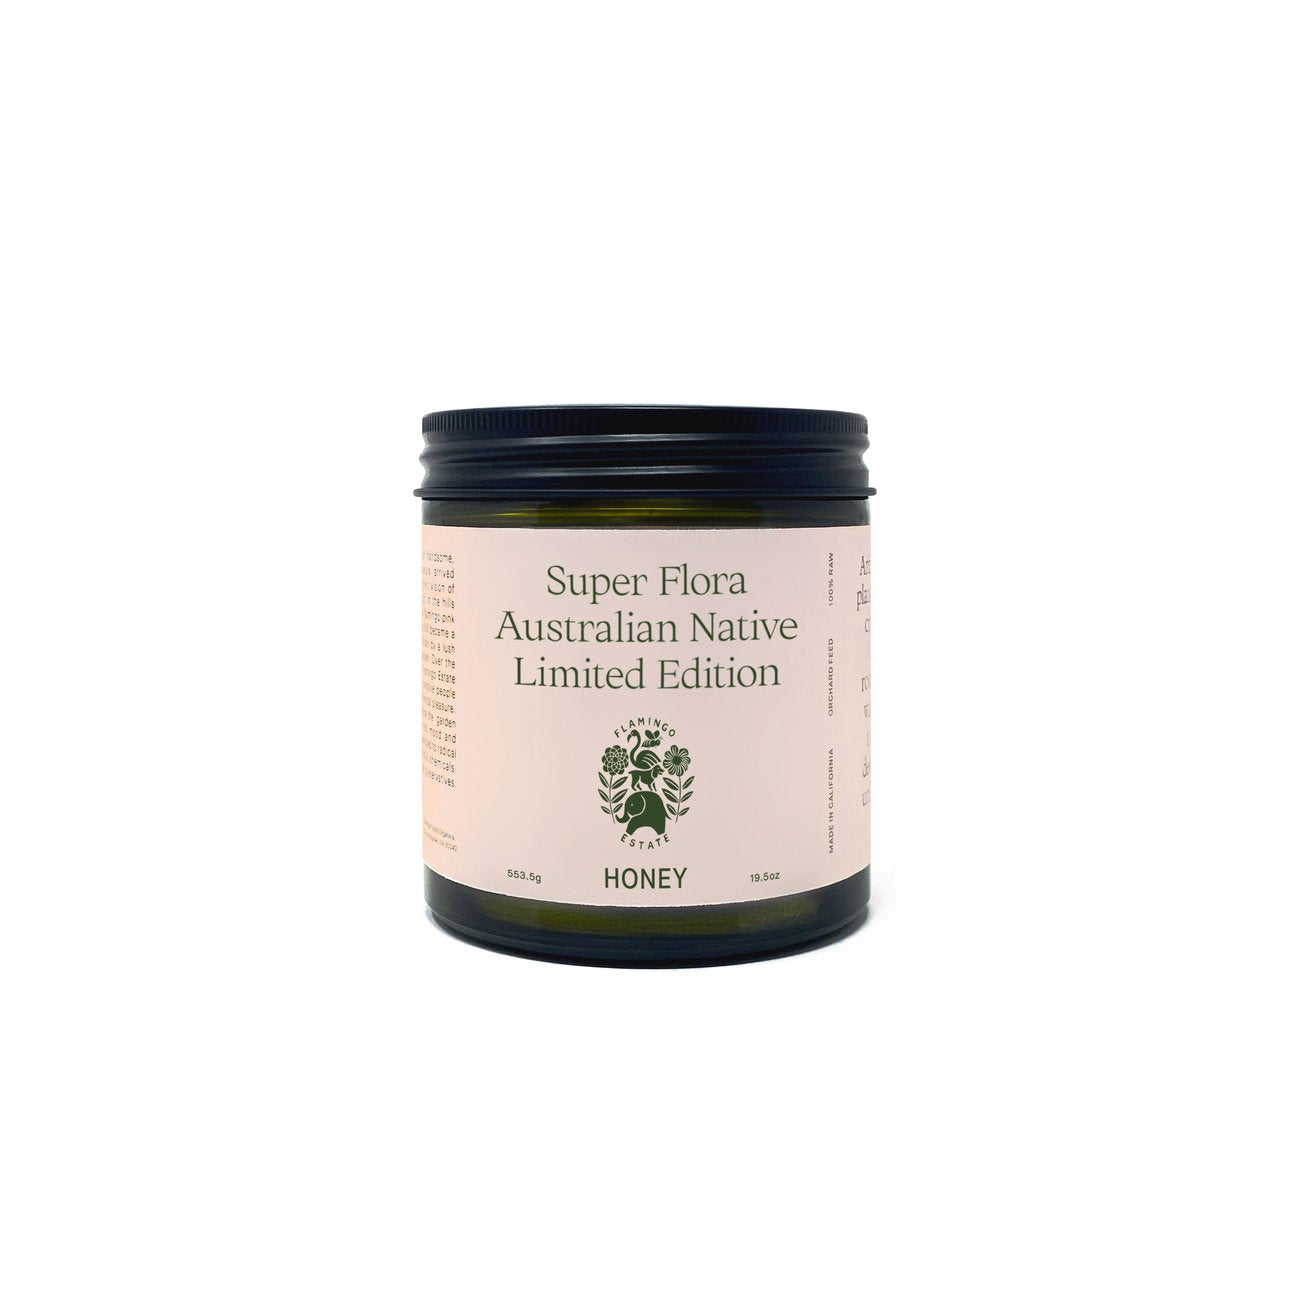 Super Flora Australian Native Limited Edition Honey